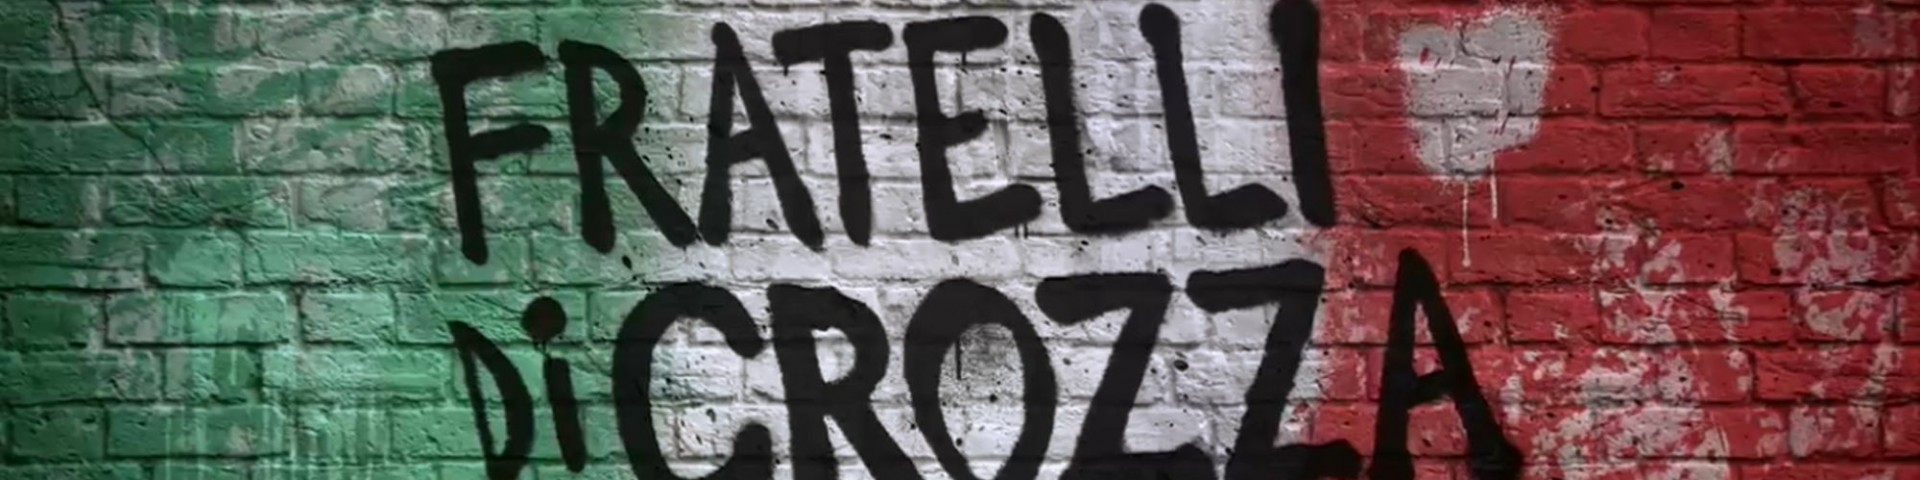 Fratelli di Crozza del 22 novembre on demand, rivedi in streaming